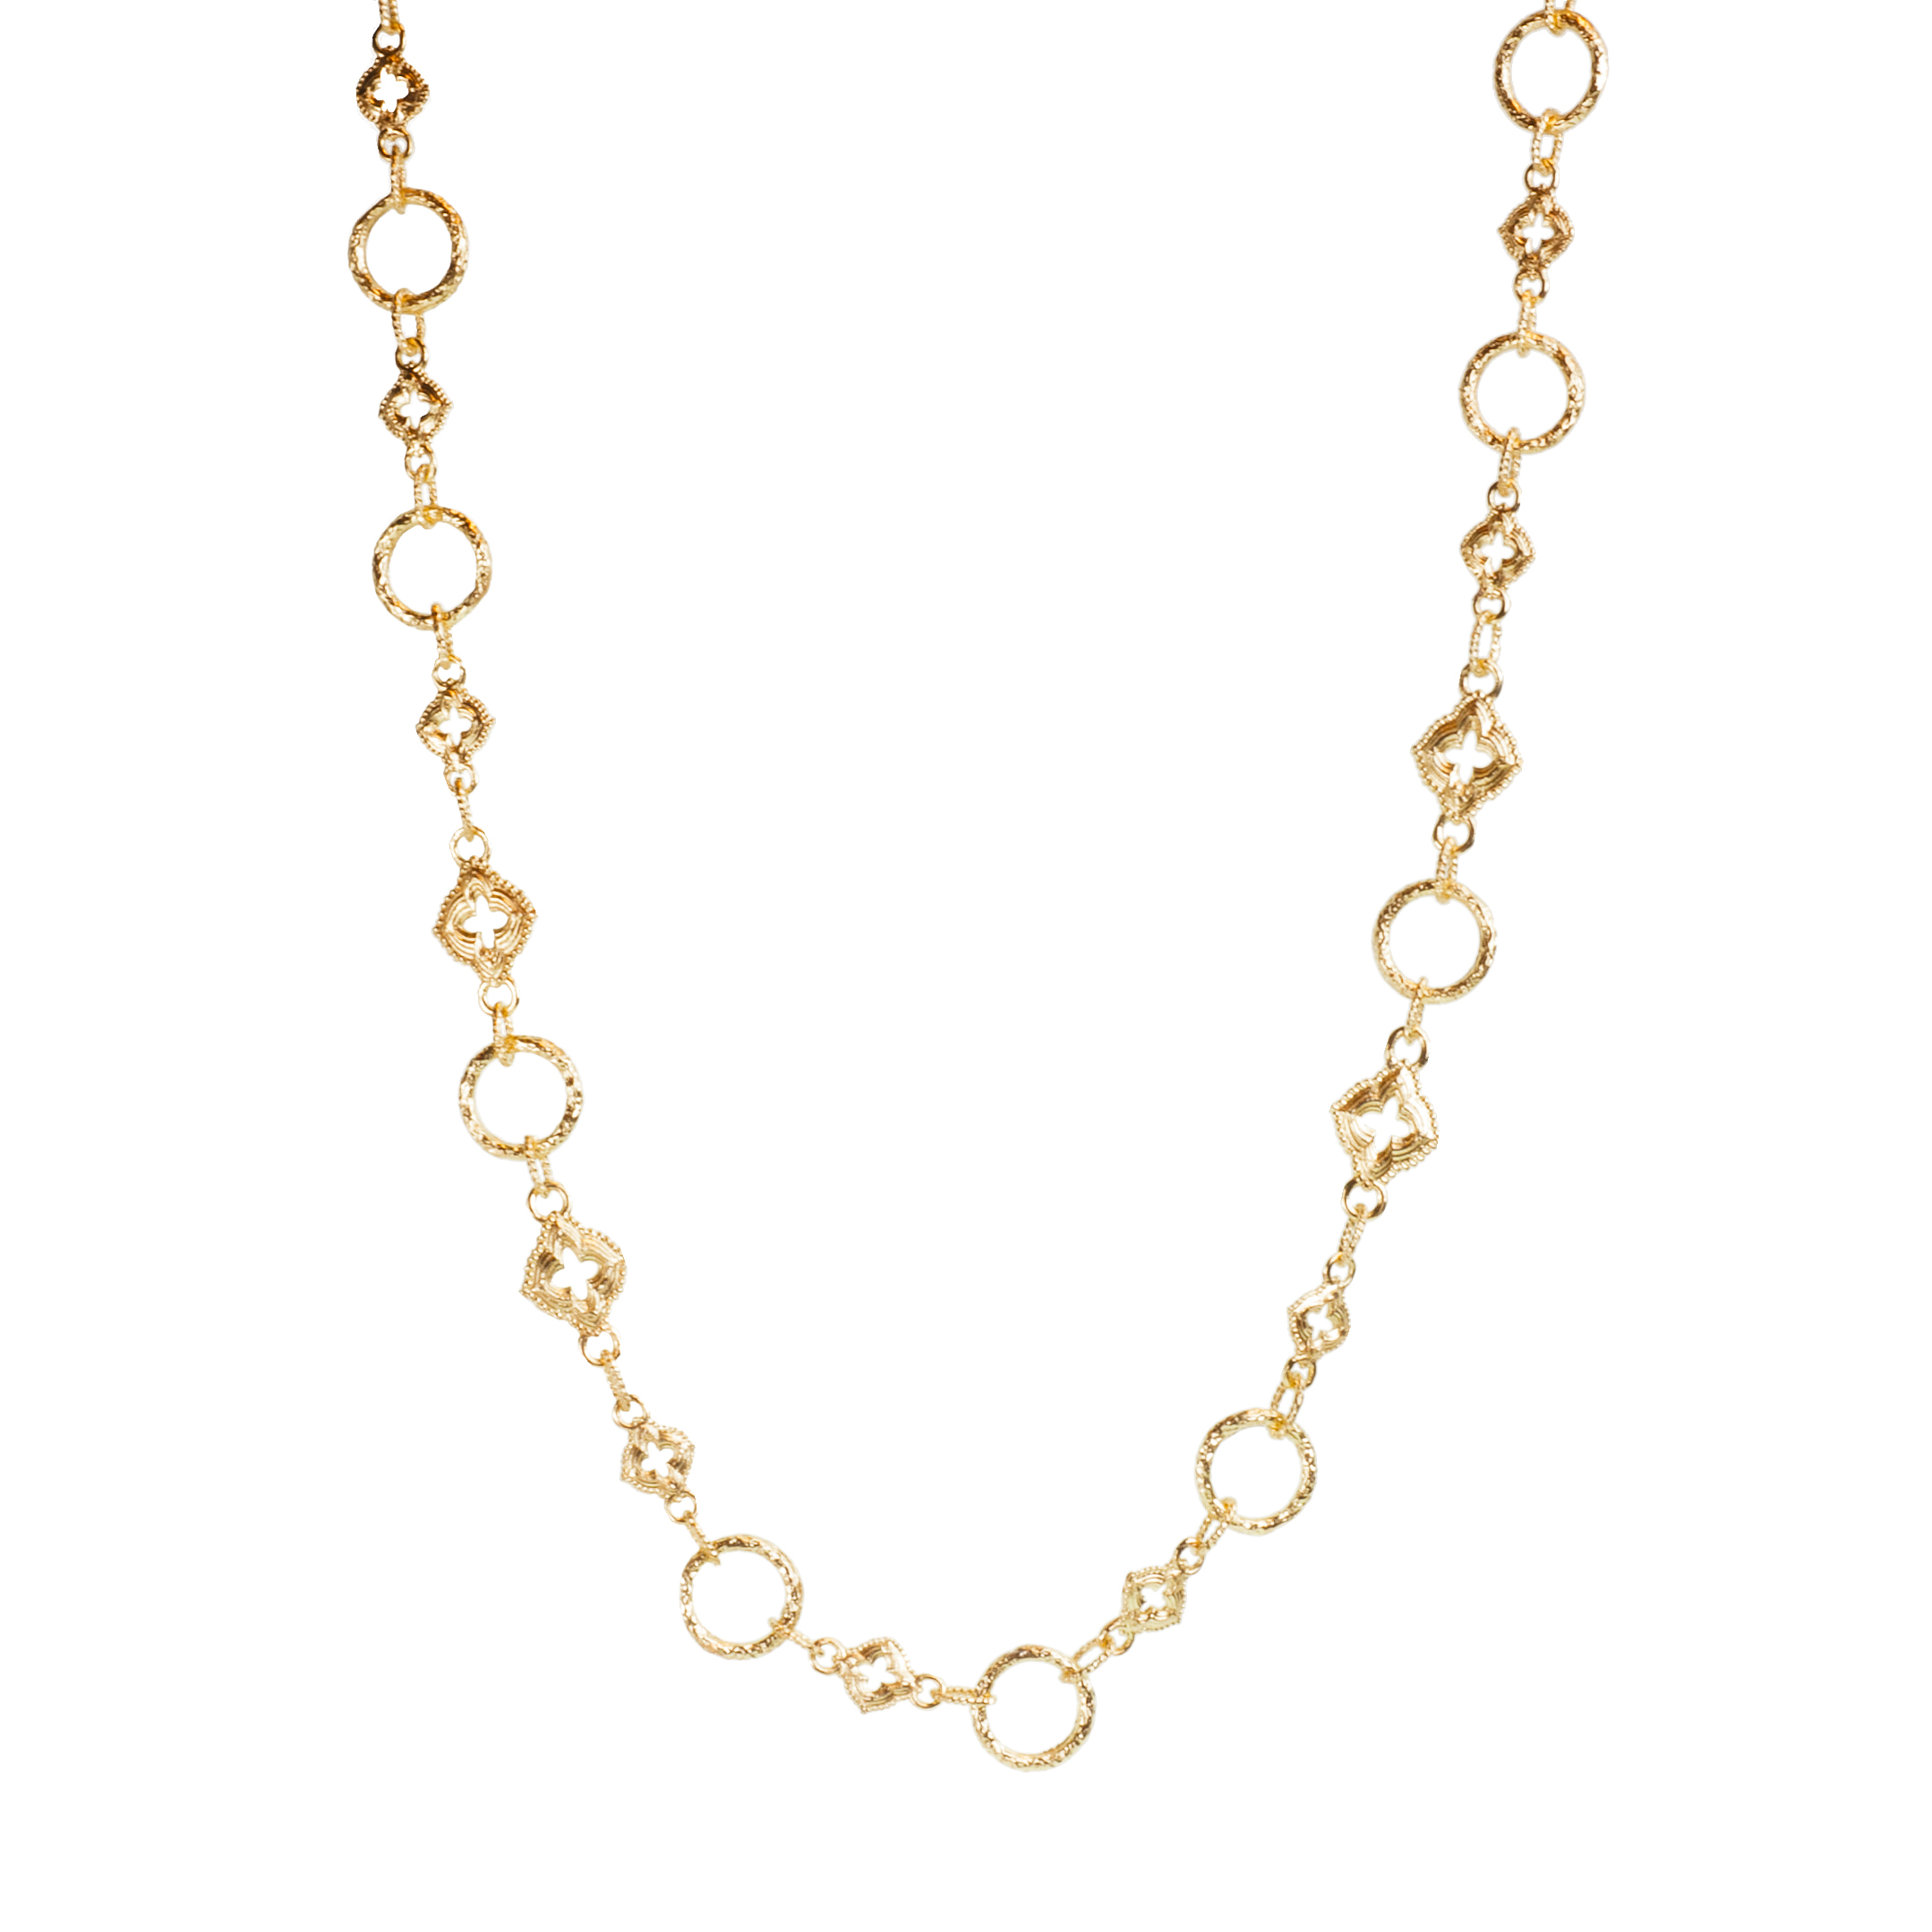 Sculpted chain necklace